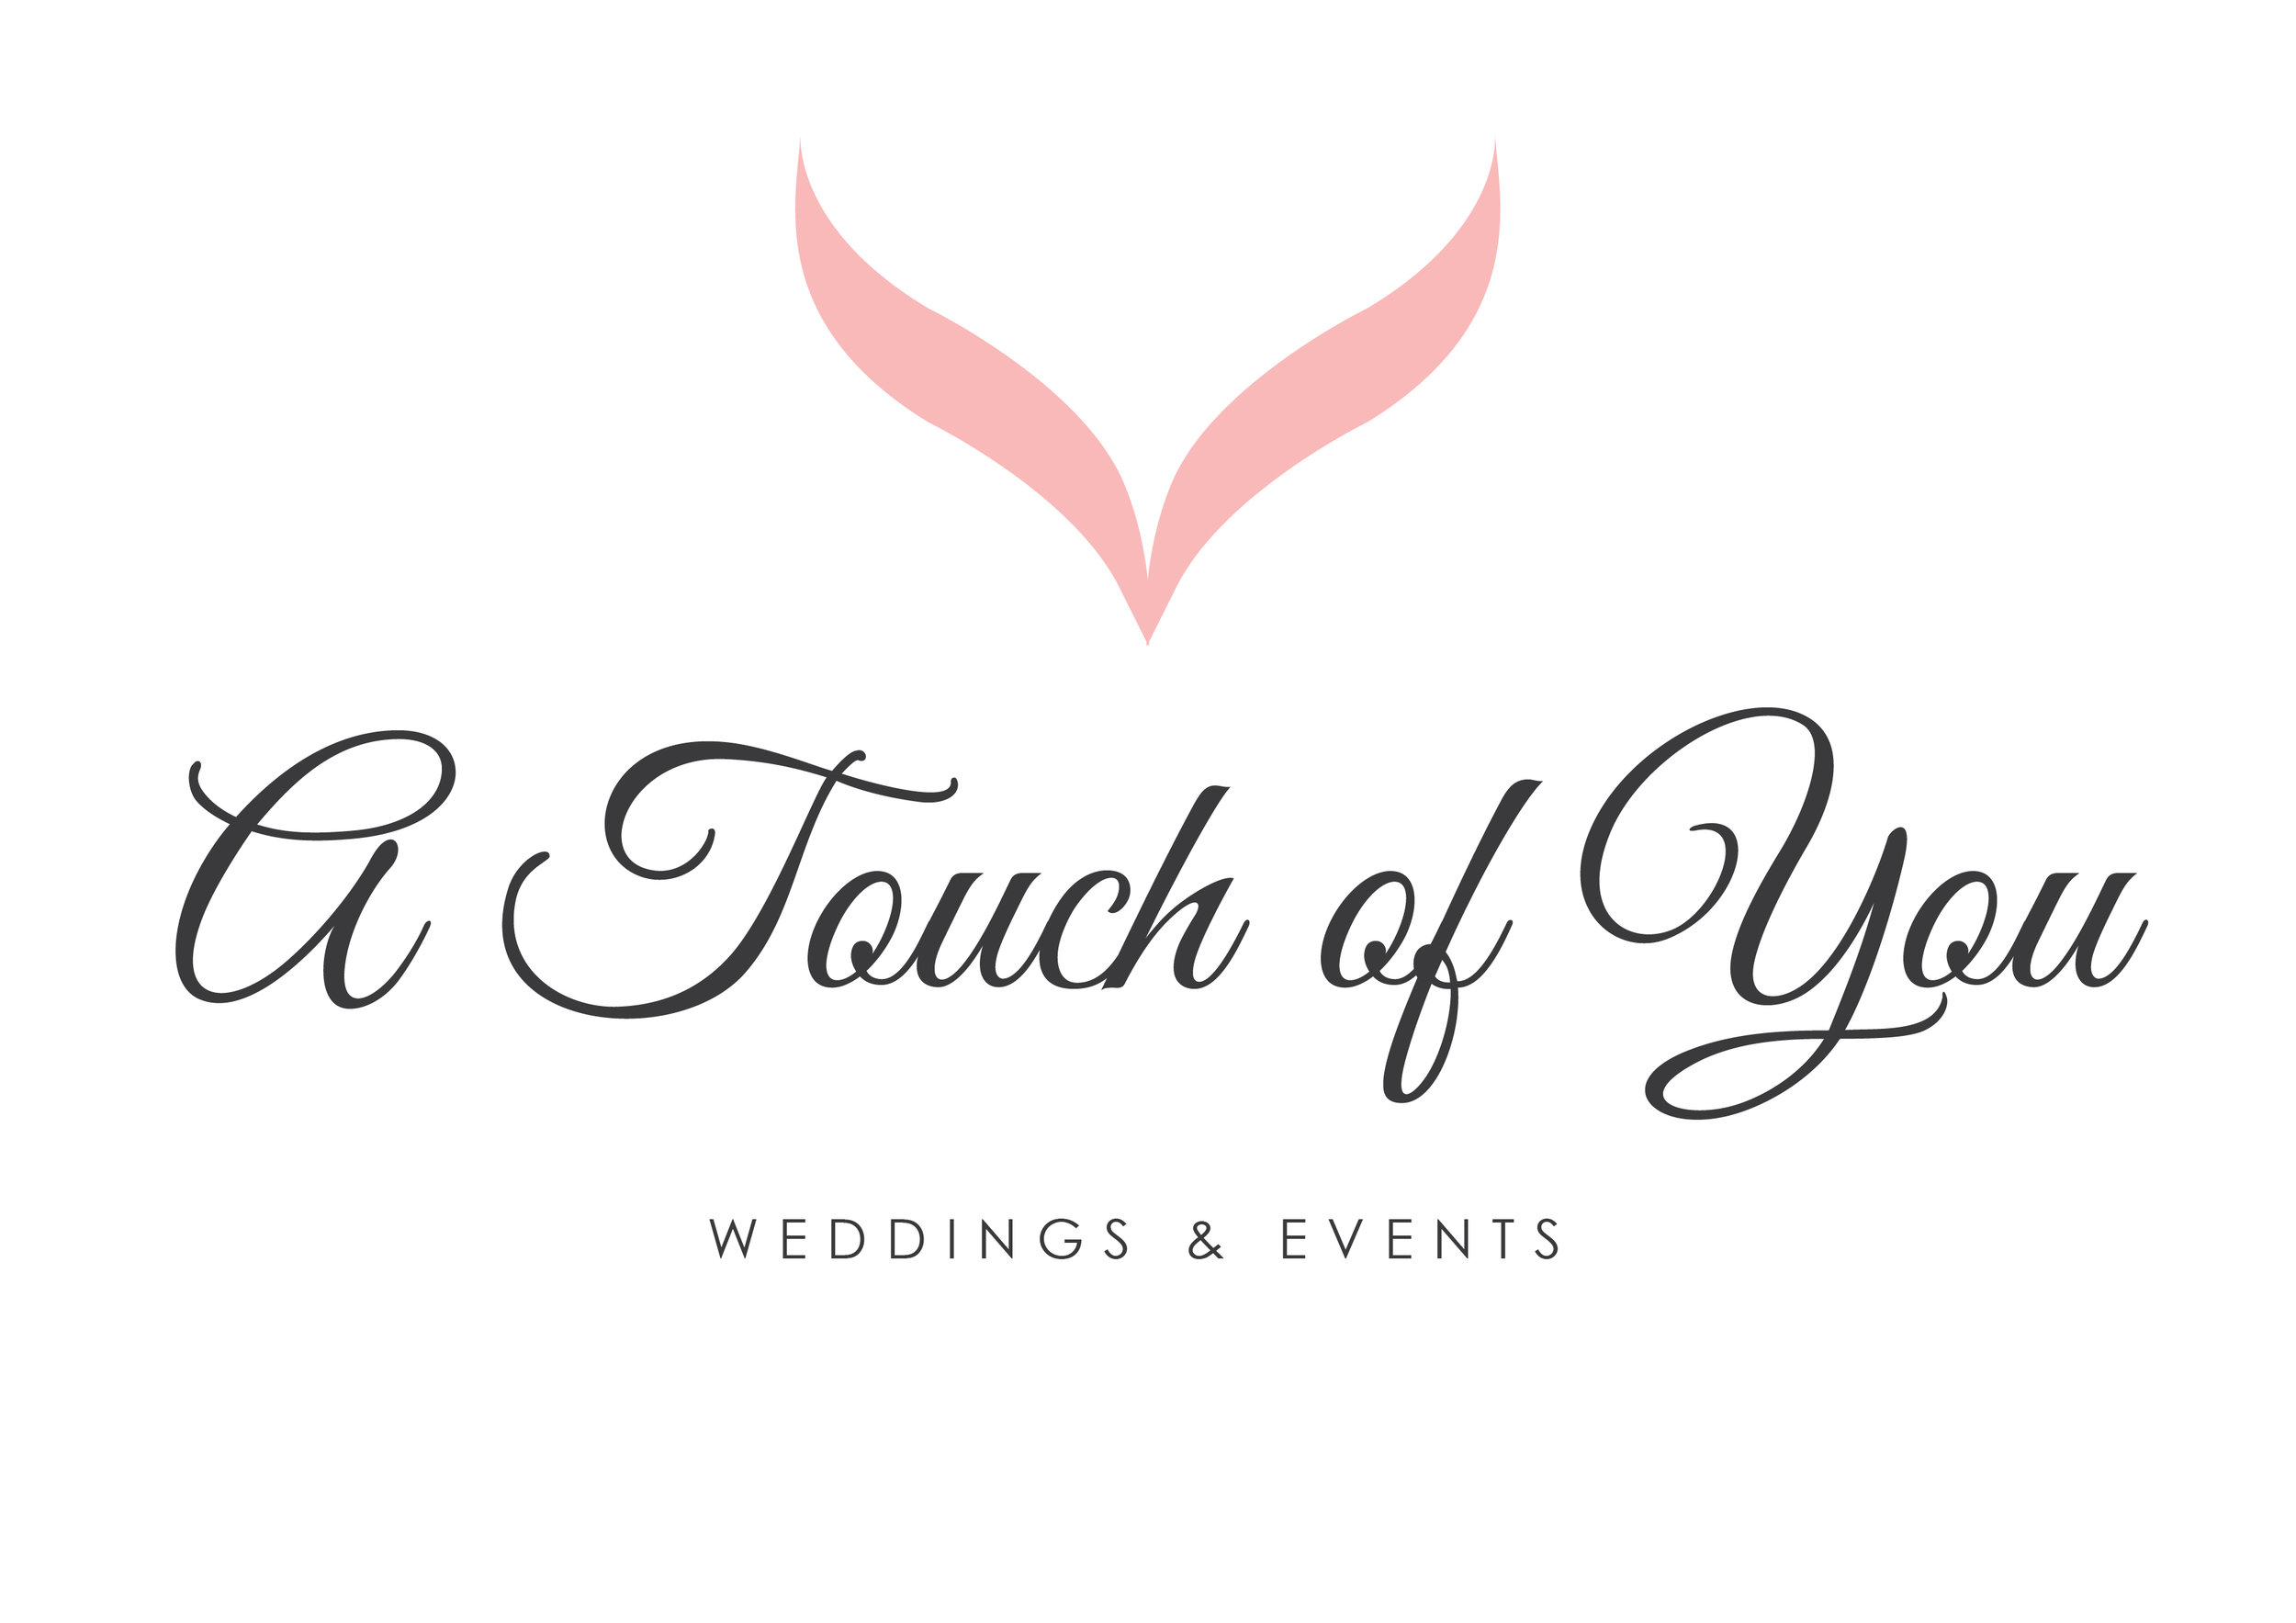 A TOUCH OF YOU-01.jpg